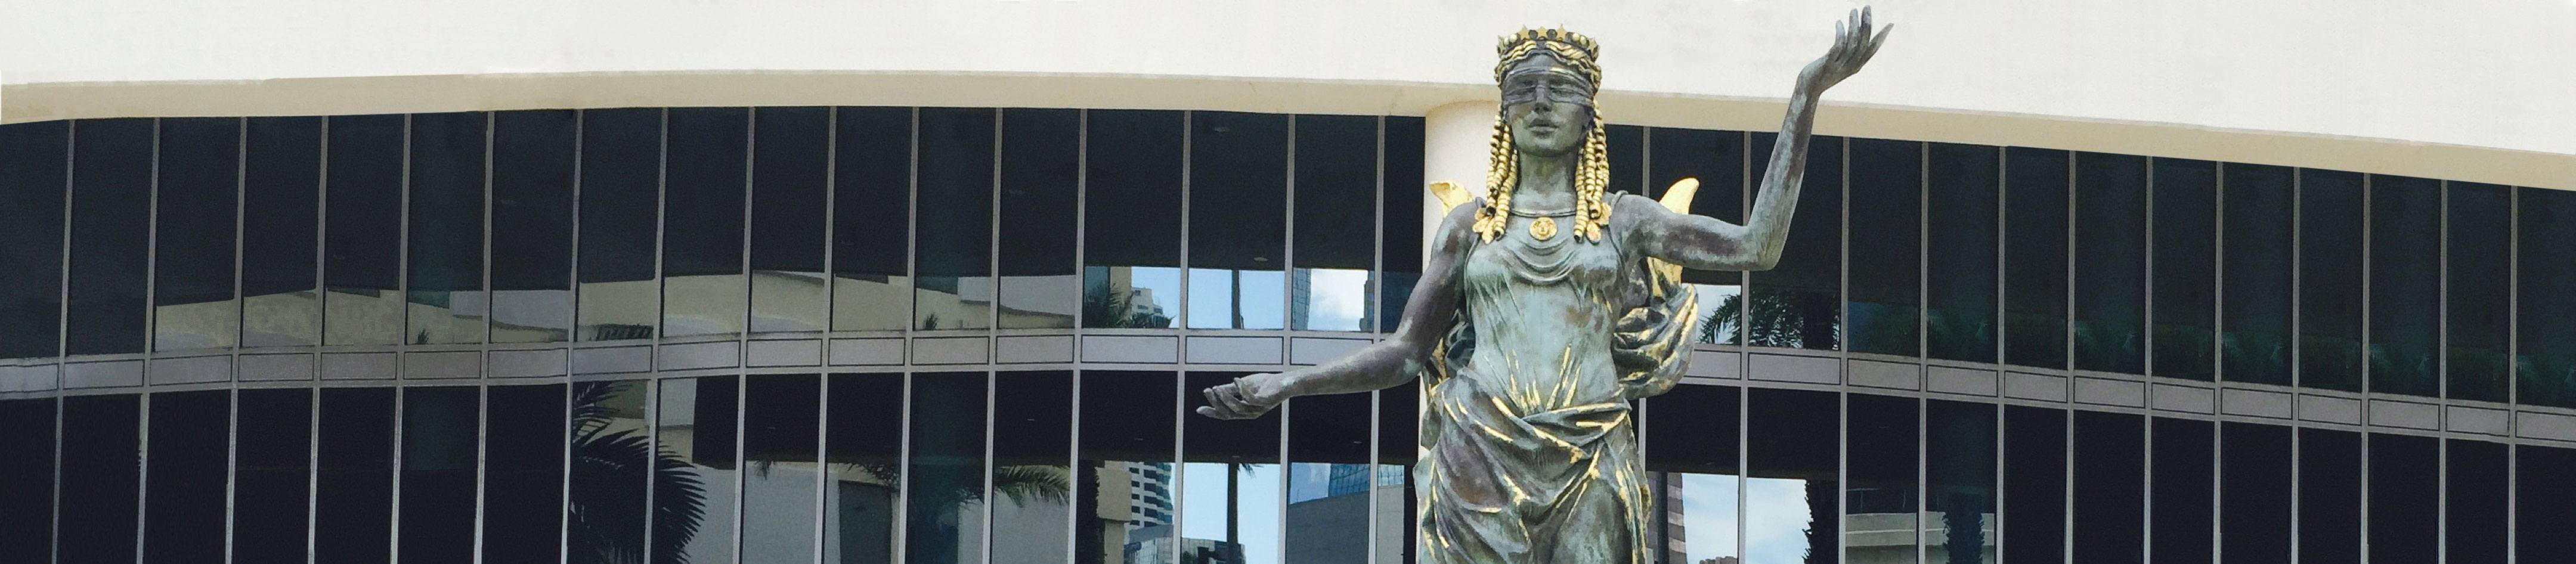 Lade Justice (the statue in front of the 13th Judicial Circuit Courthouse)